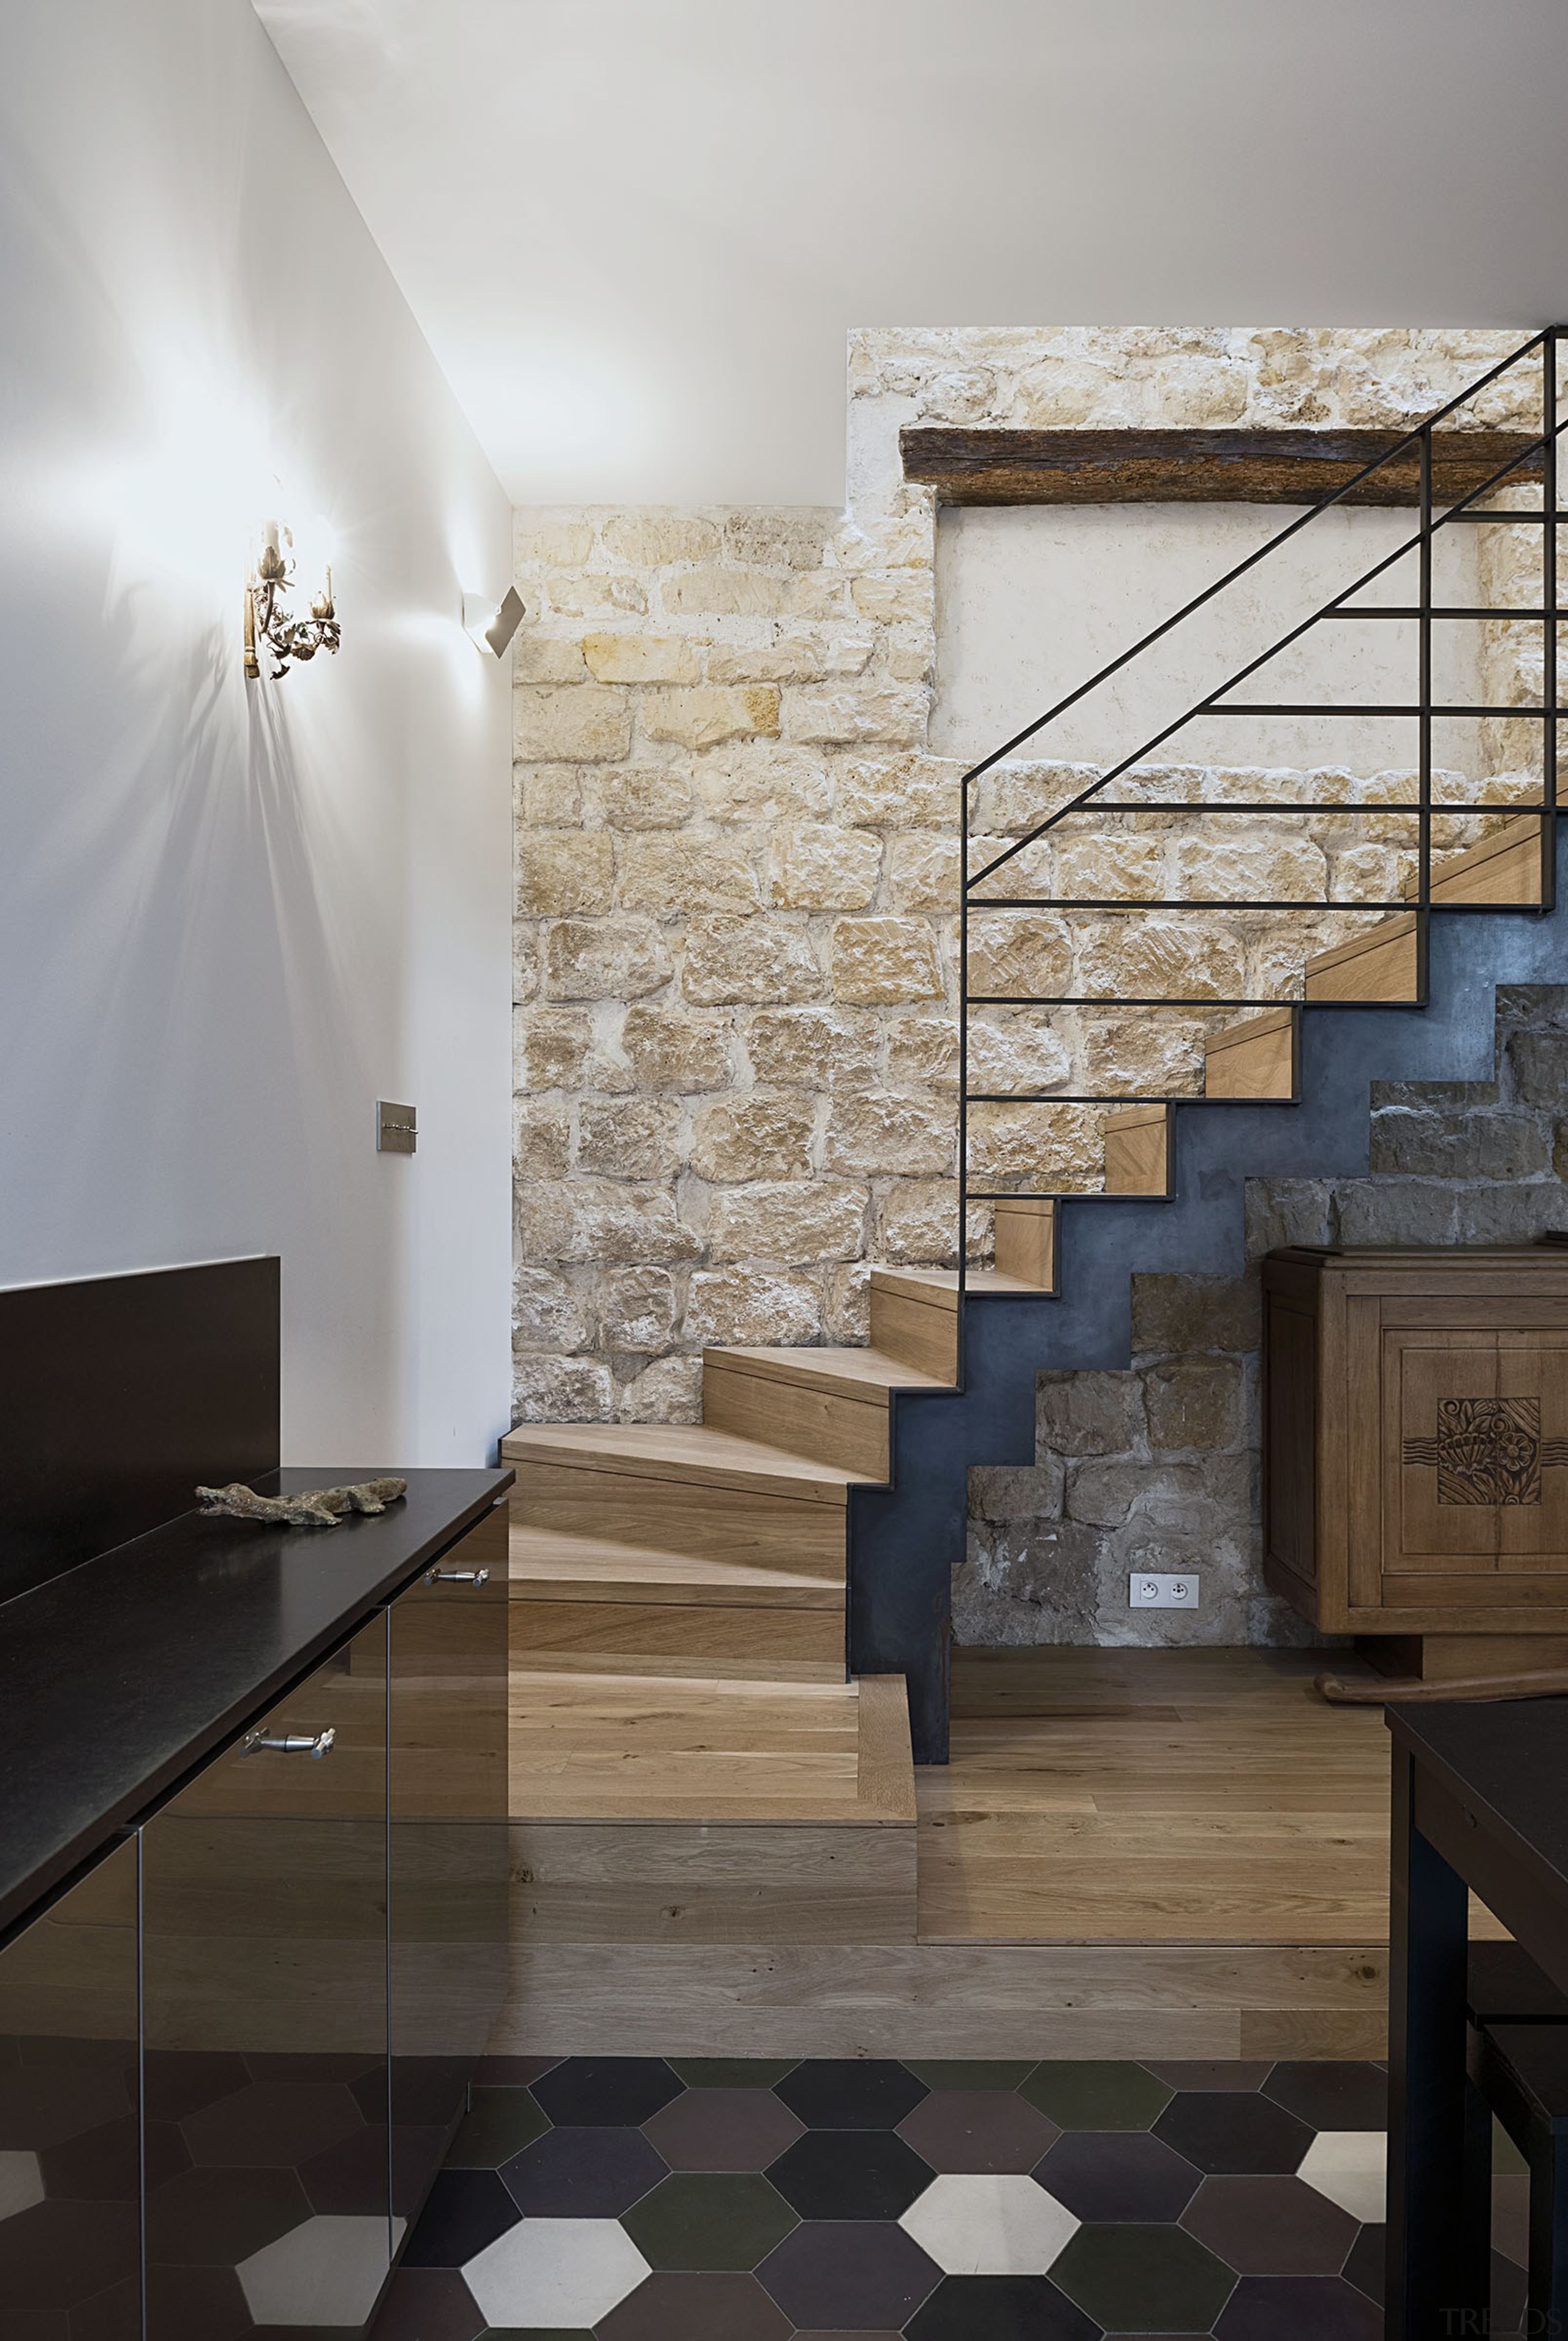 Staircase leading to the rooms in raw metal architecture, building, ceiling, floor, flooring, furniture, glass, handrail, hardwood, home, house, interior design, lobby, material property, property, room, stairs, tile, wall, wood, wood flooring, gray, black